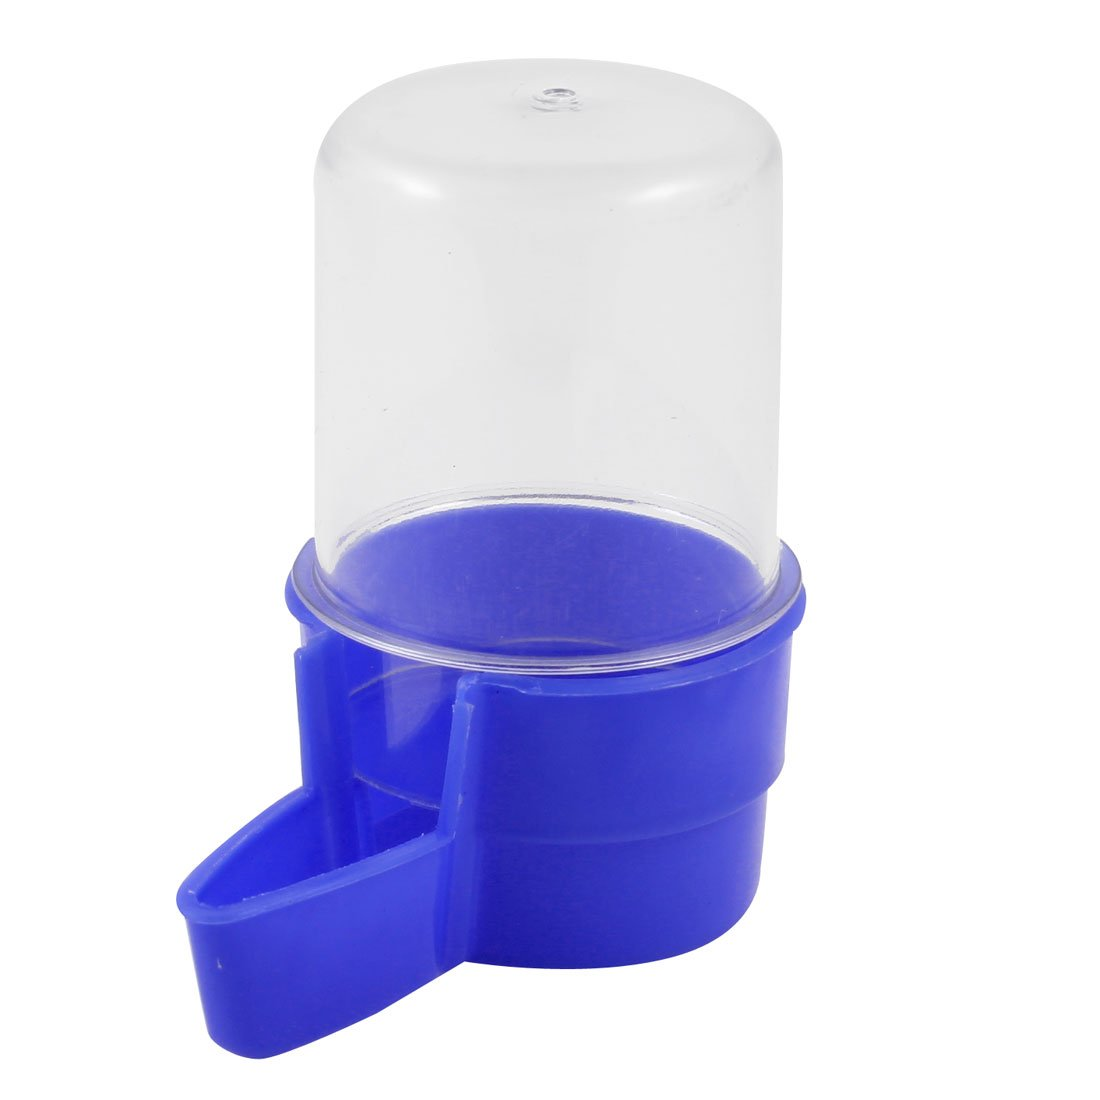 uxcell Pet Water Fountain Feeding Waterer, Blue/Clear by uxcell